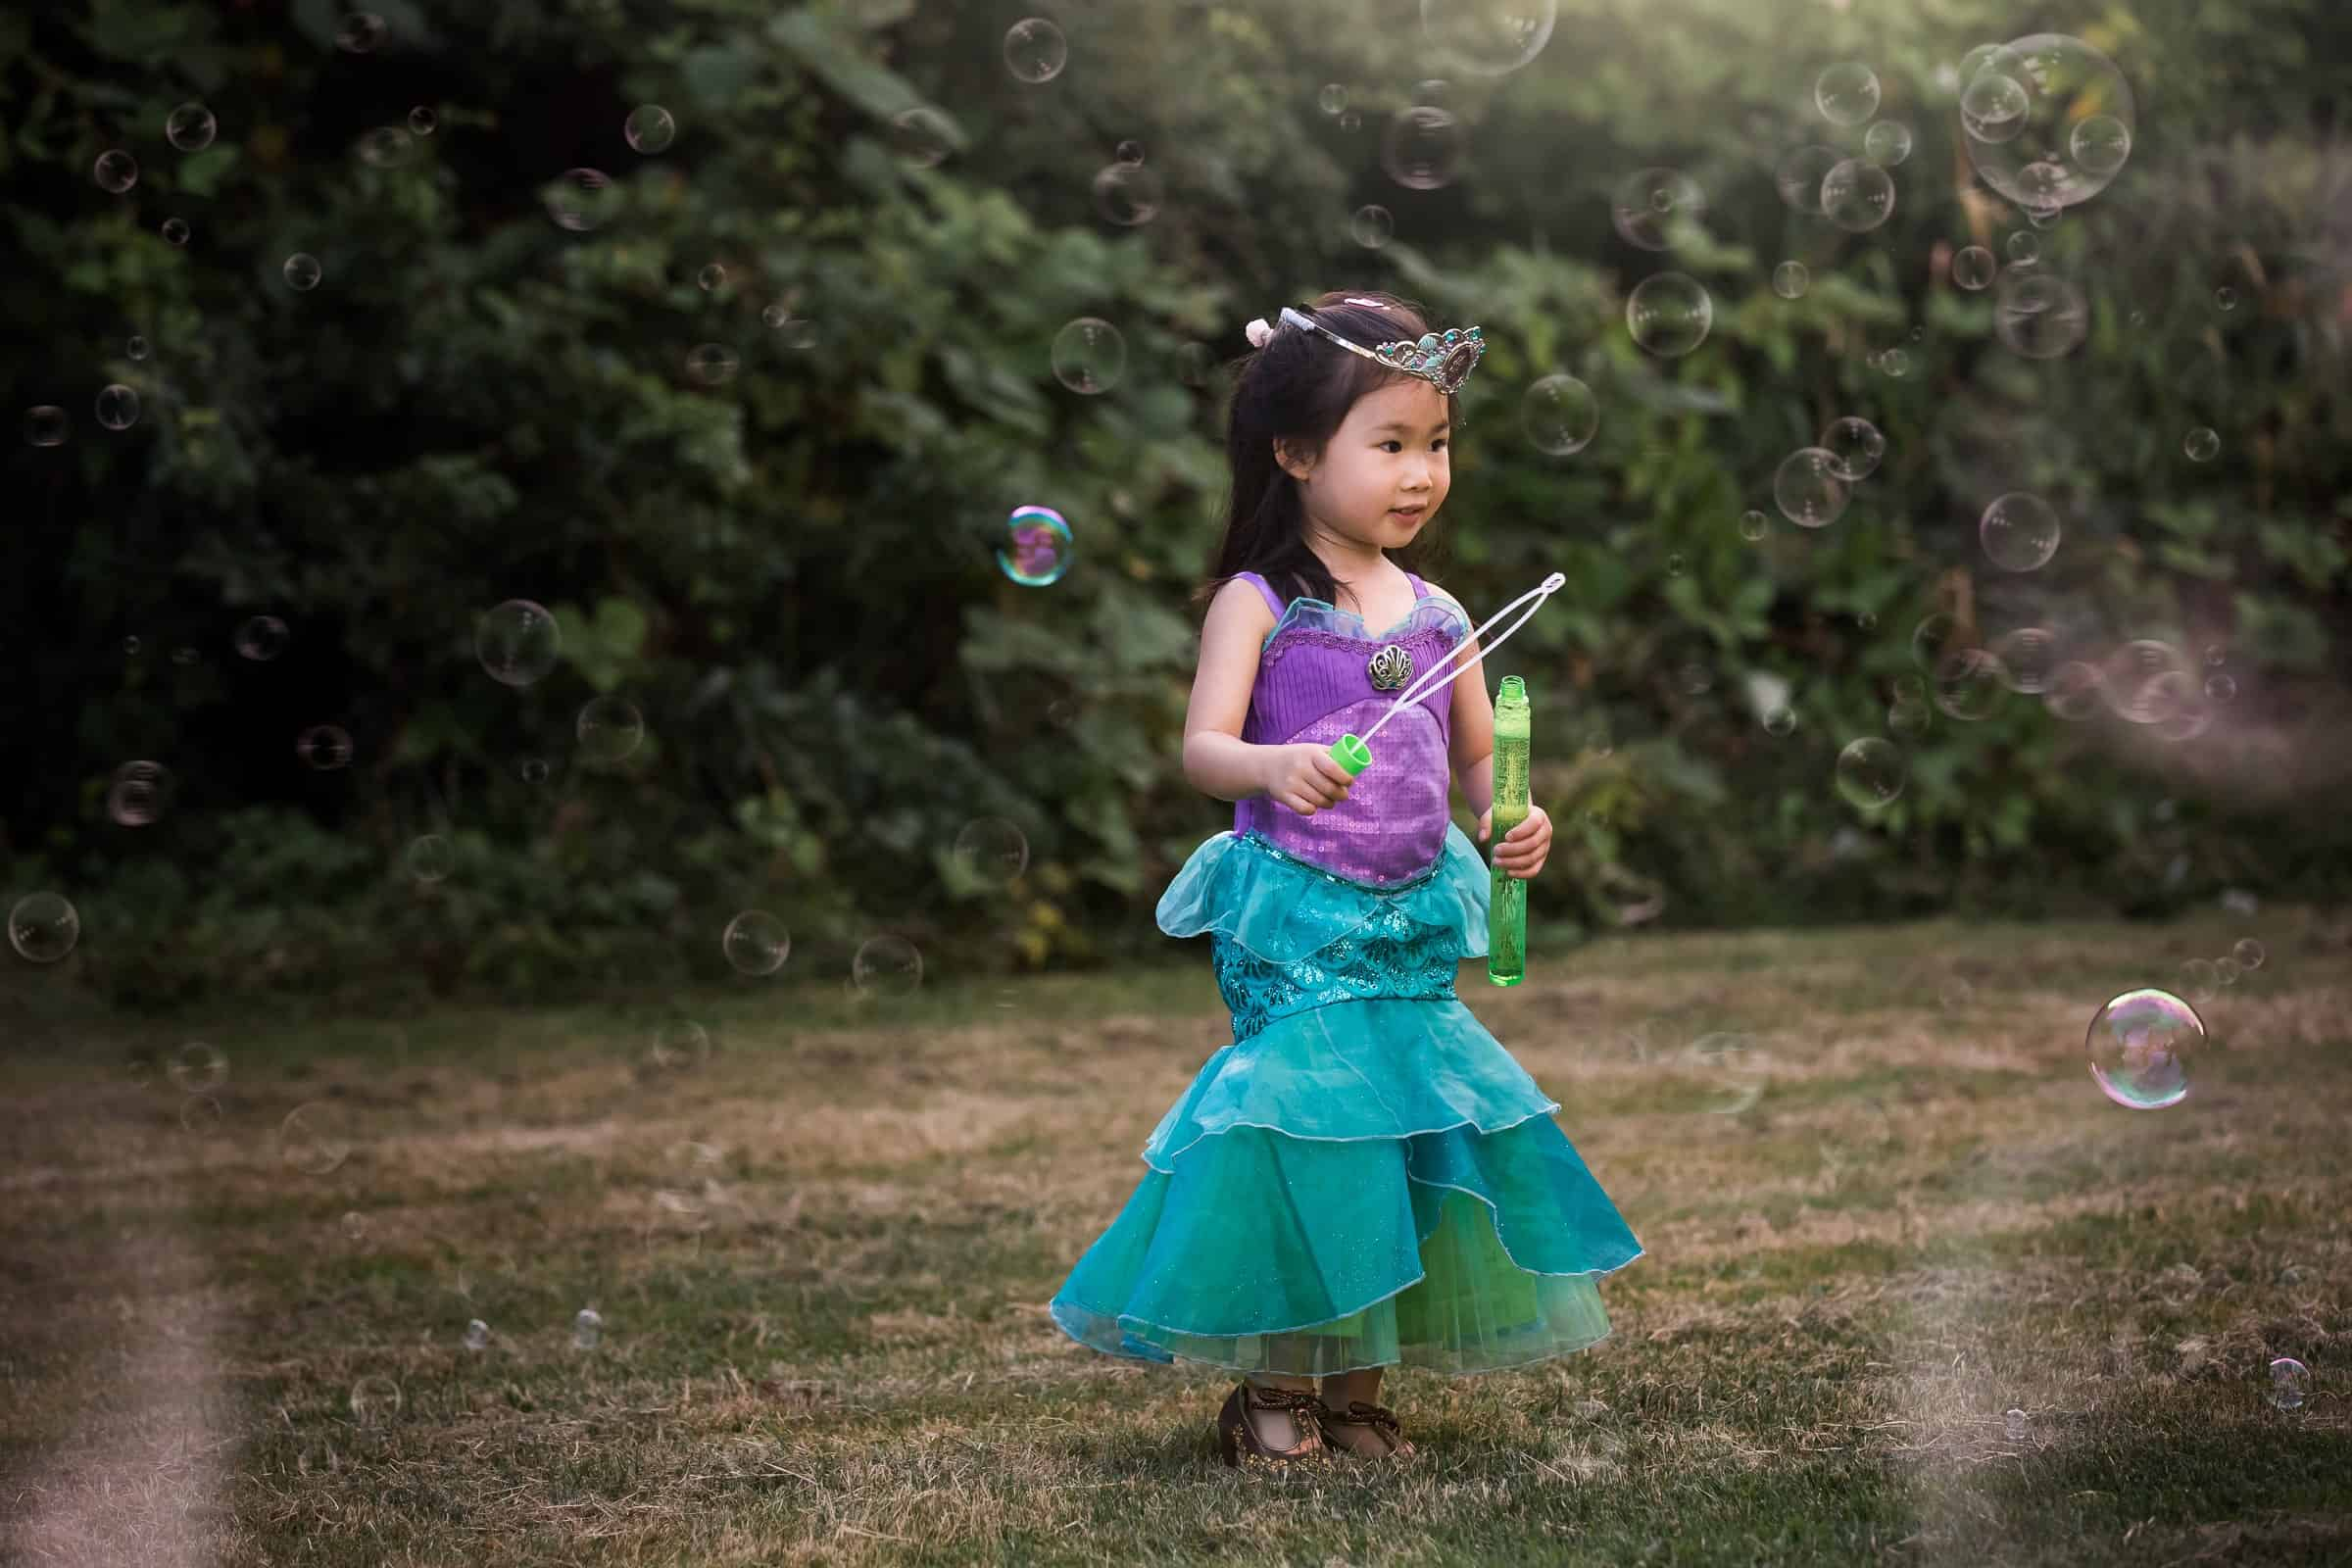 little girl dressed as Princess Ariel blowing bubbles